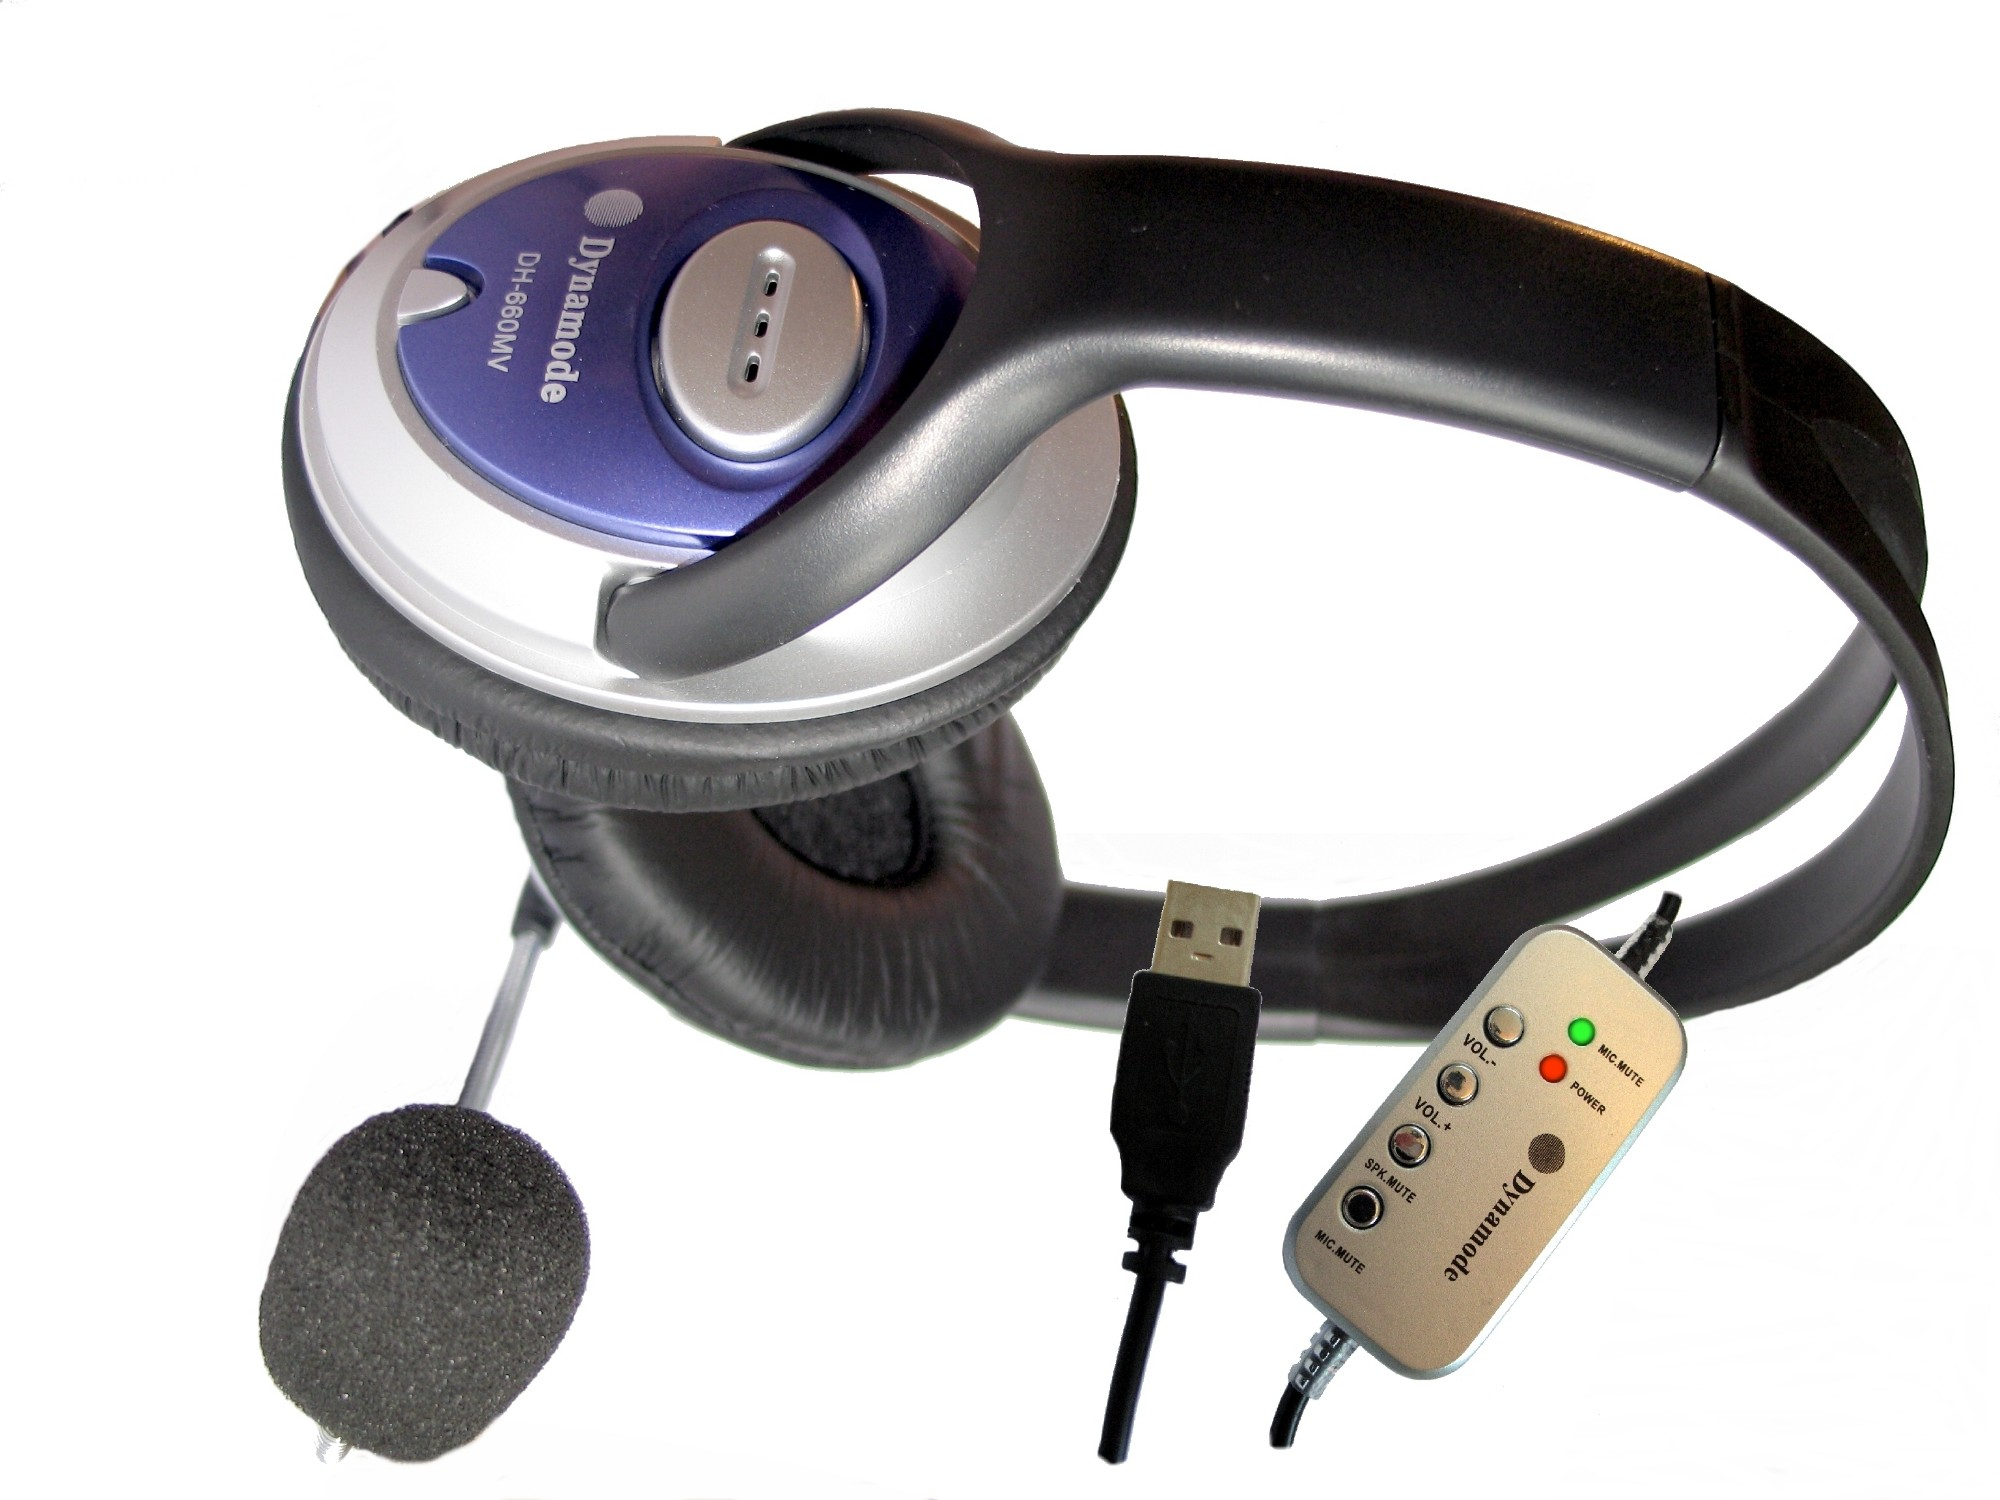 Dynamode Skype Stereo ClearSound headphone with Mic. Binaural headset